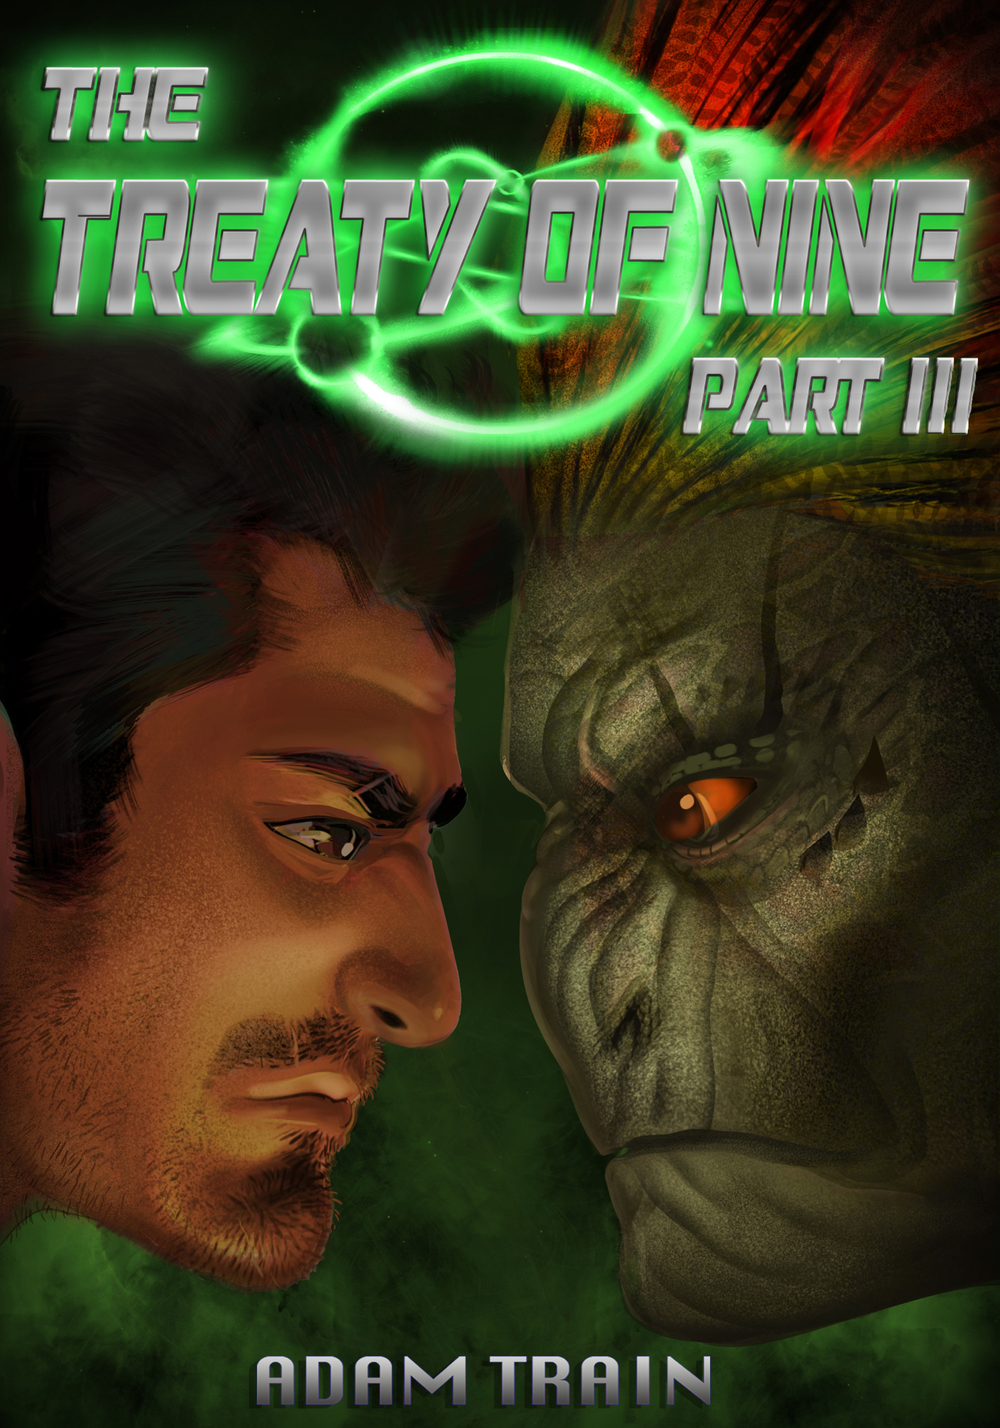 PART III This sprawling space tale continues with Part III. Ten years after the war, a growing threat to the treaty opens old battle wounds and drags an unsuspecting bunch into the struggle for peace.